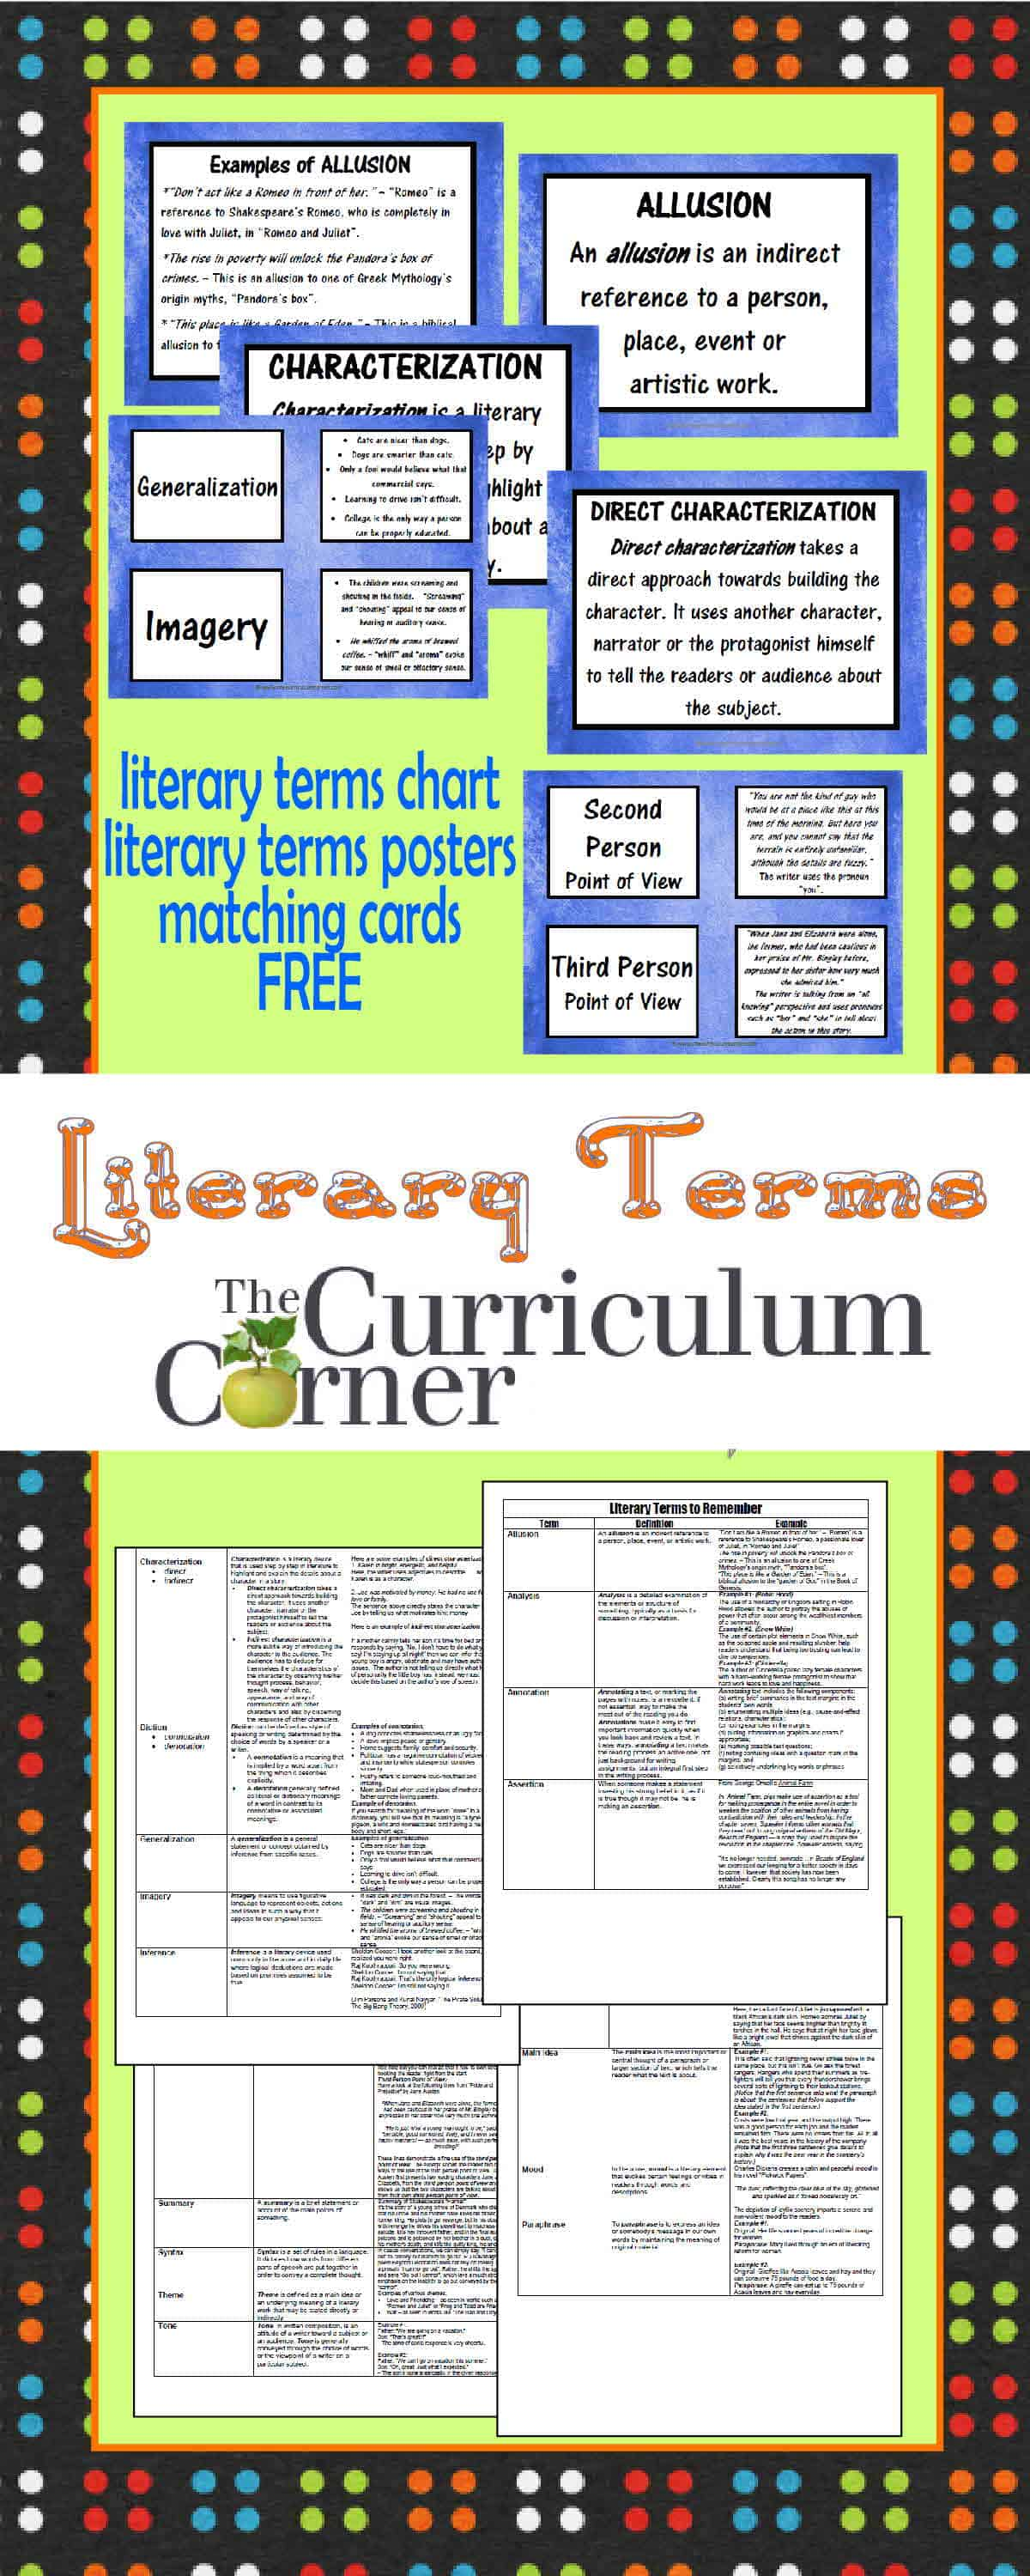 Advanced Literary Terms The Curriculum Corner 4 5 6